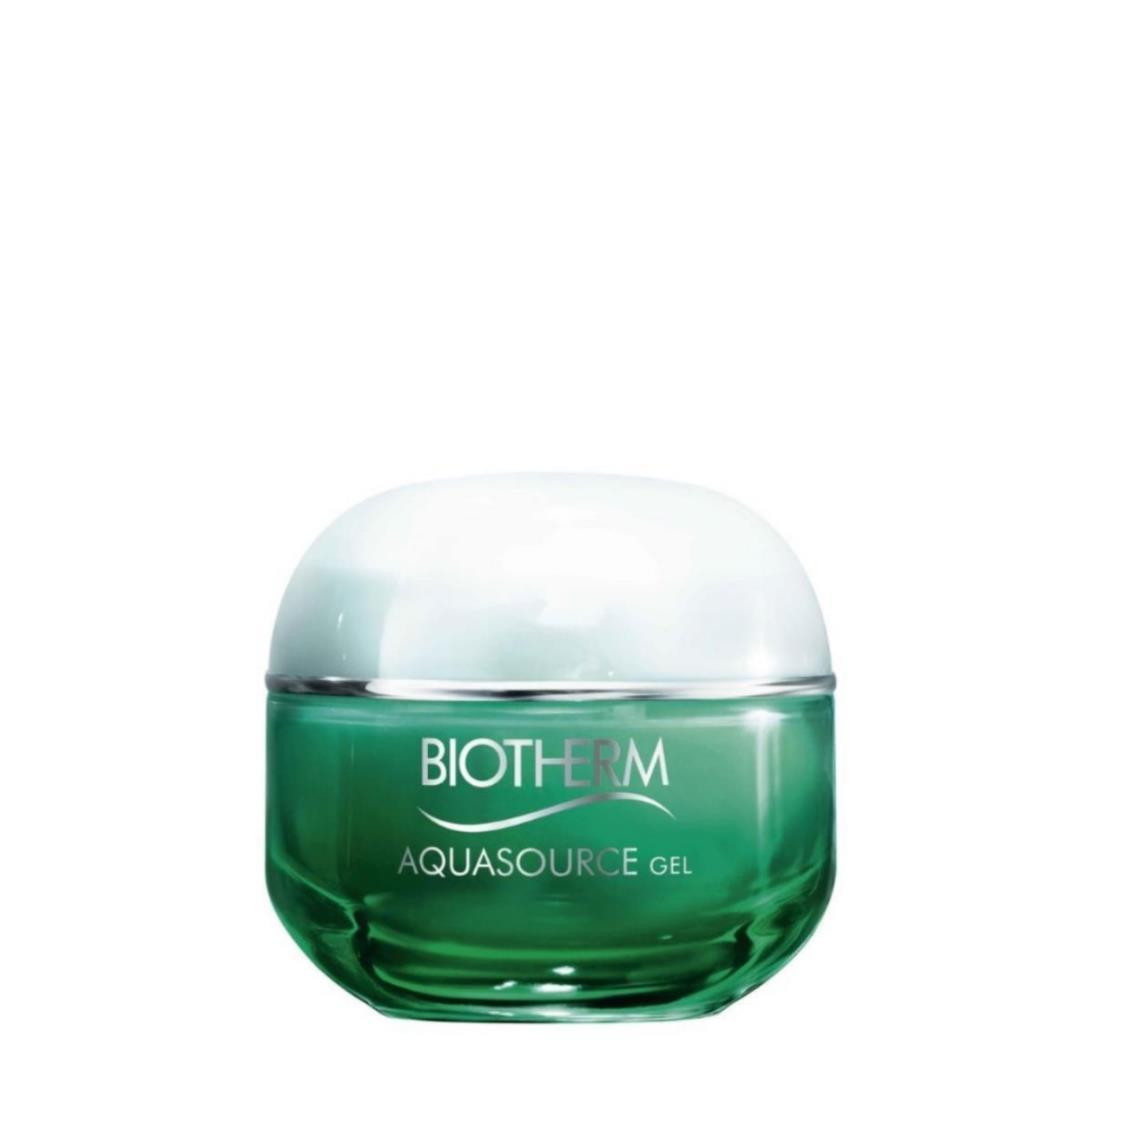 Aquasource Gel 50ml